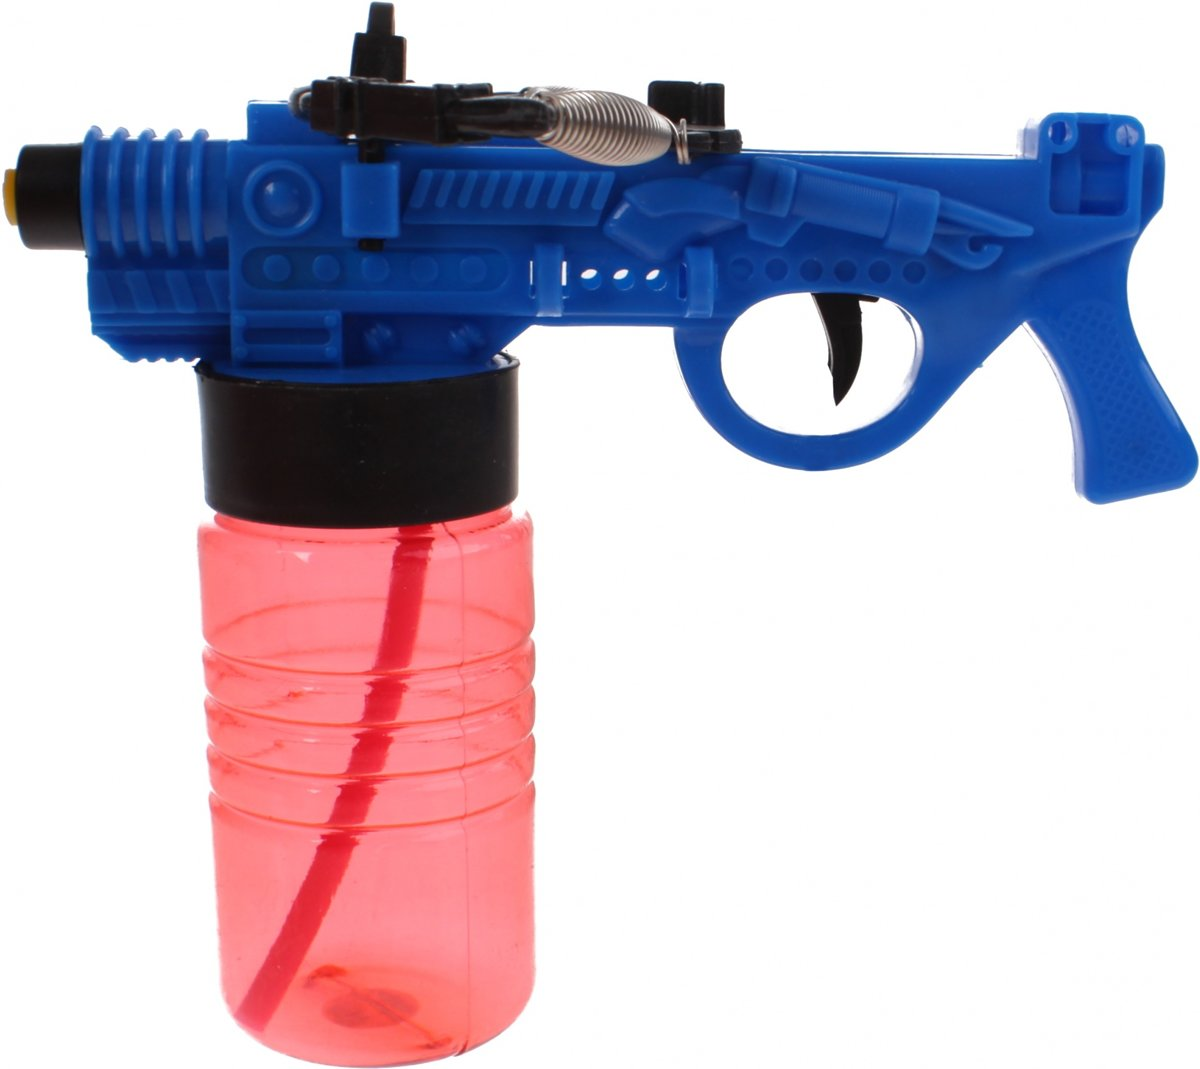 Toi-toys Waterboogschieter 15 Cm Blauw/rood